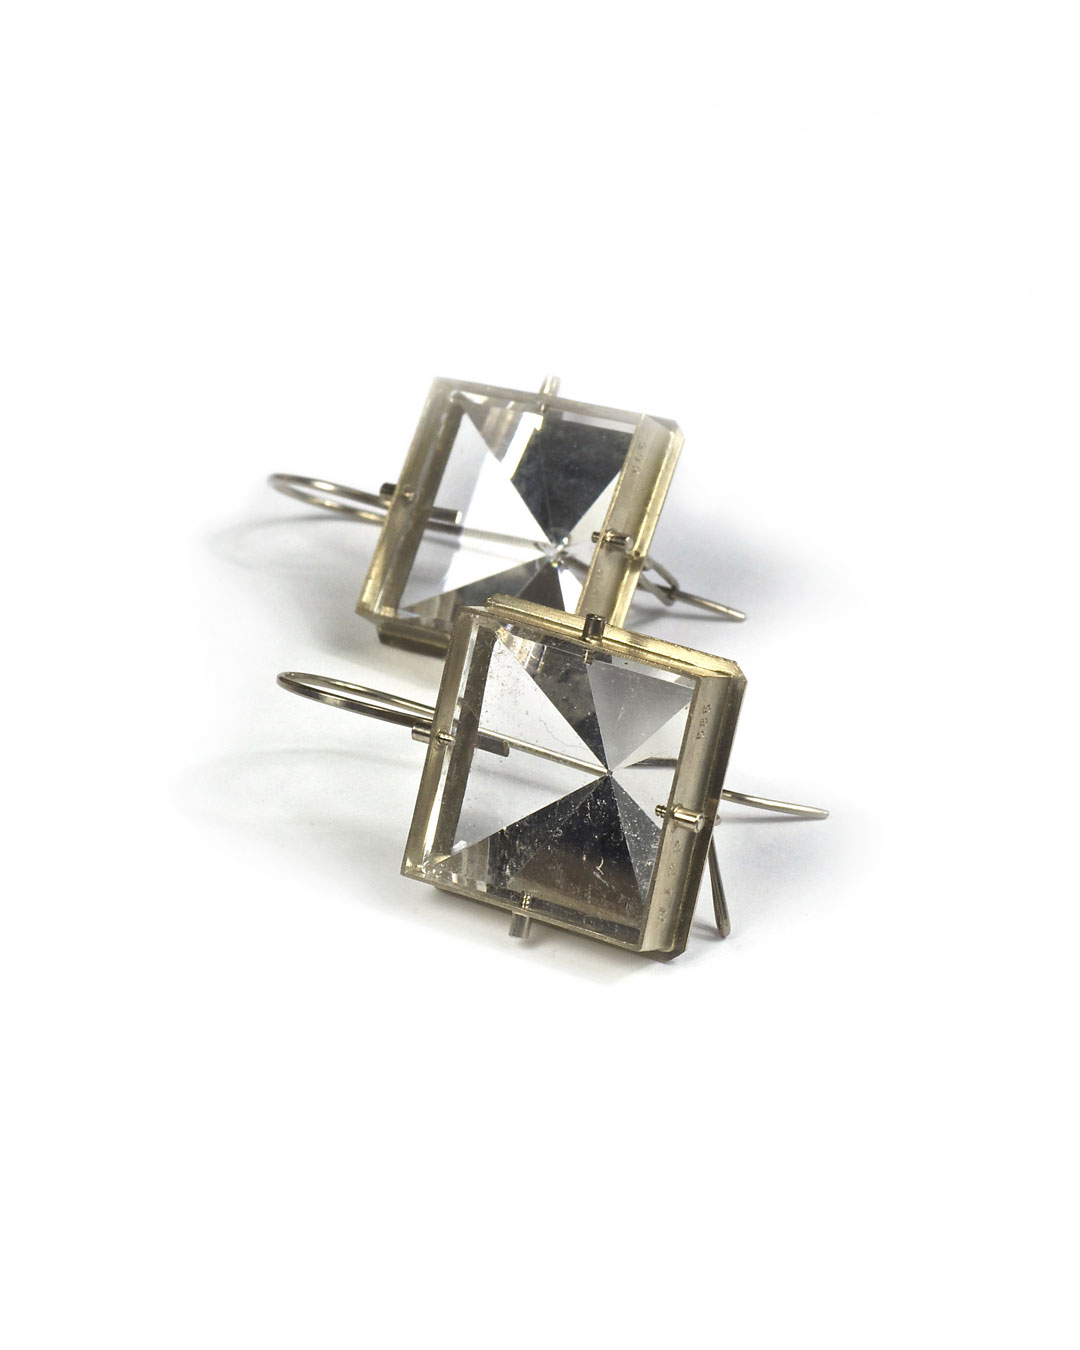 Andrea Wippermann, untitled, 2004, earrings; white gold, rock crystal, 48 x 24 x 25 mm, €2450